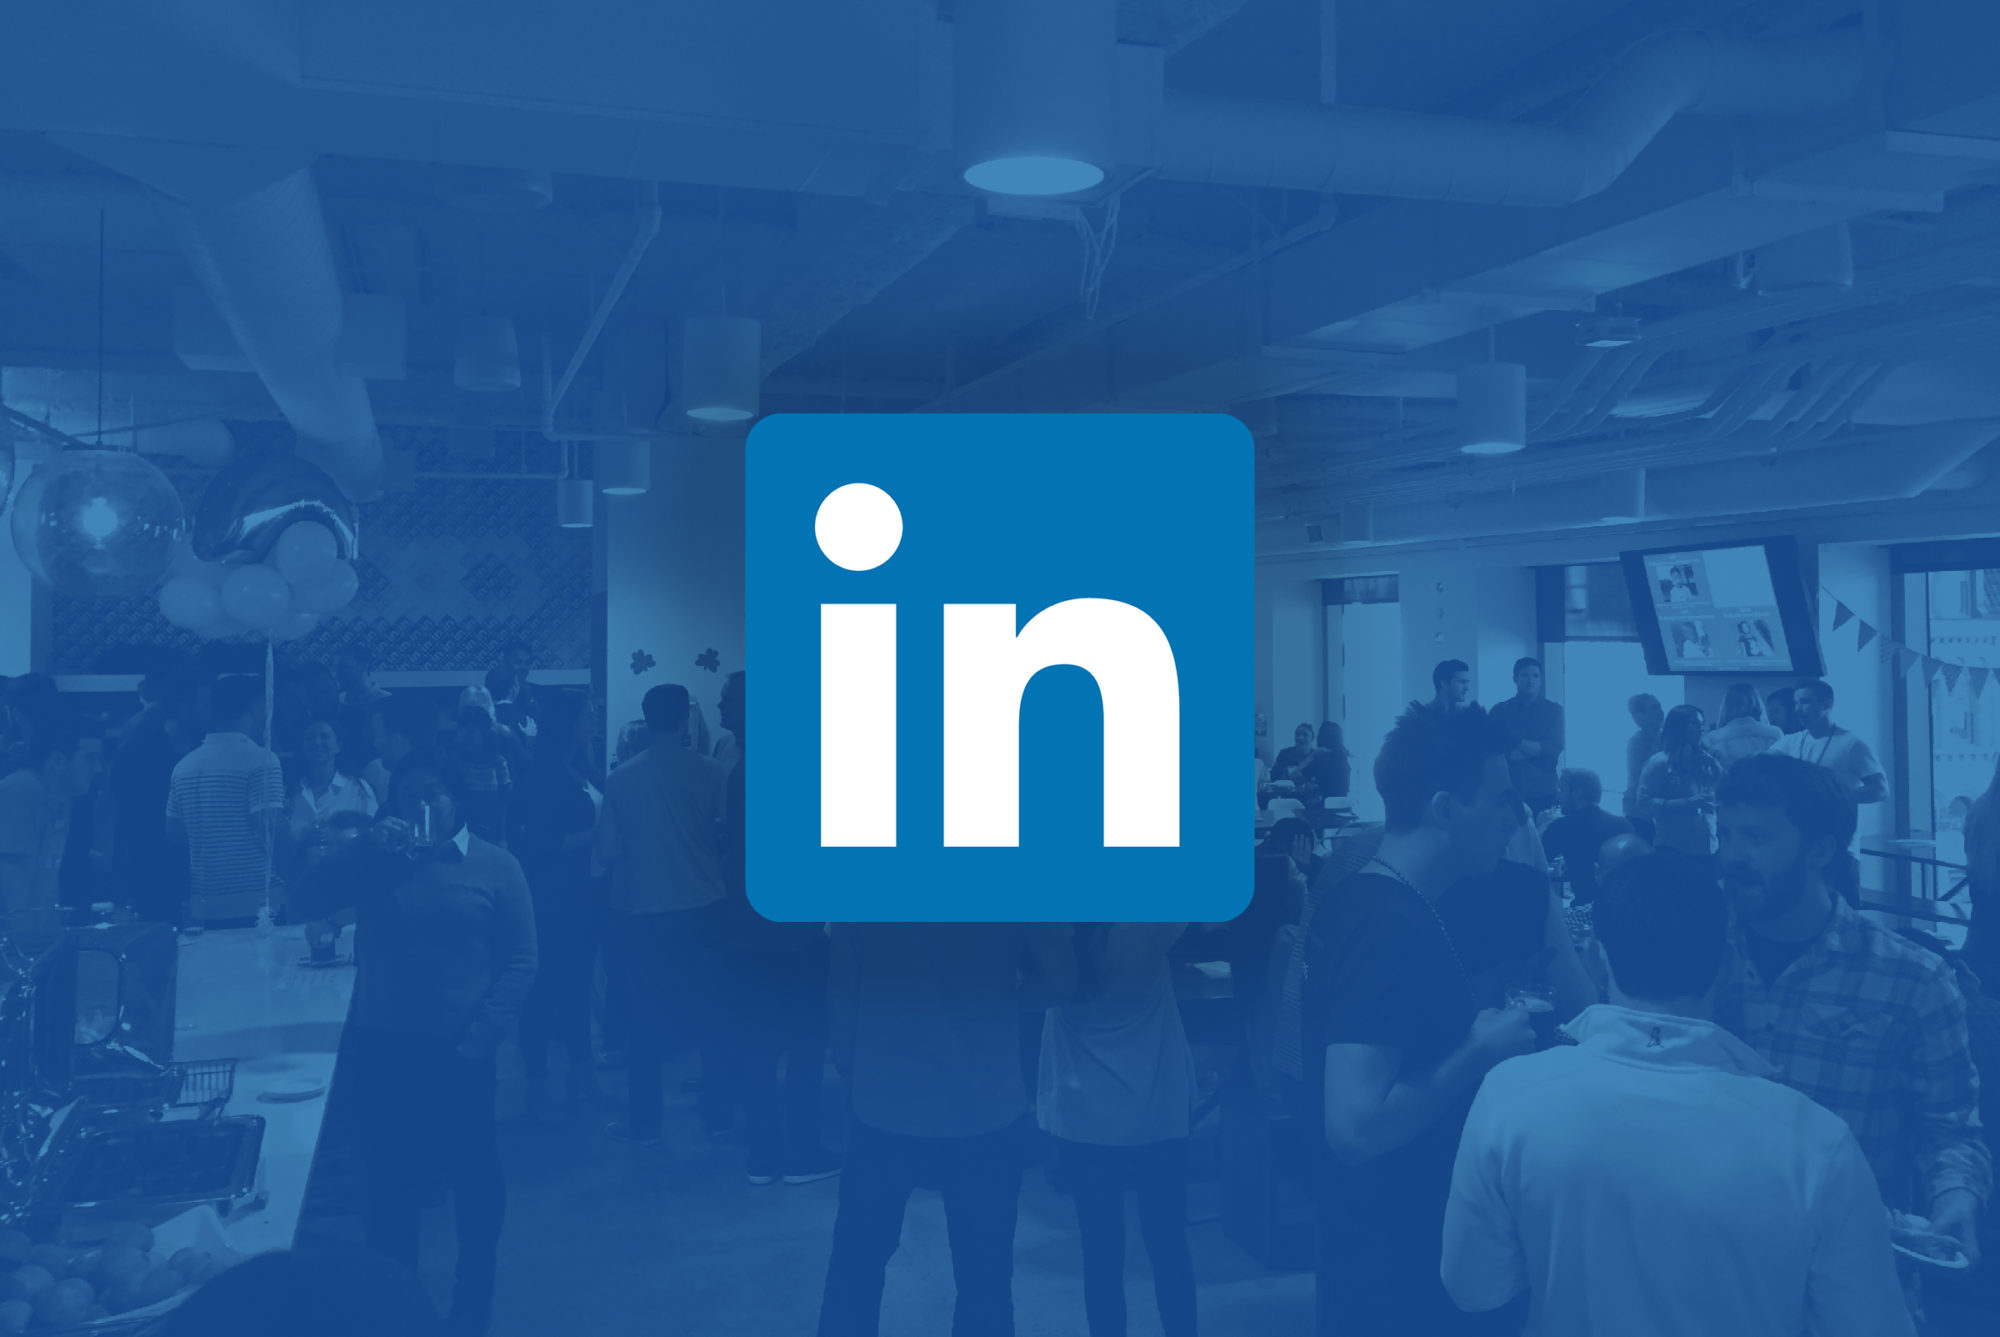 LinkedIn raised $5k for patients!